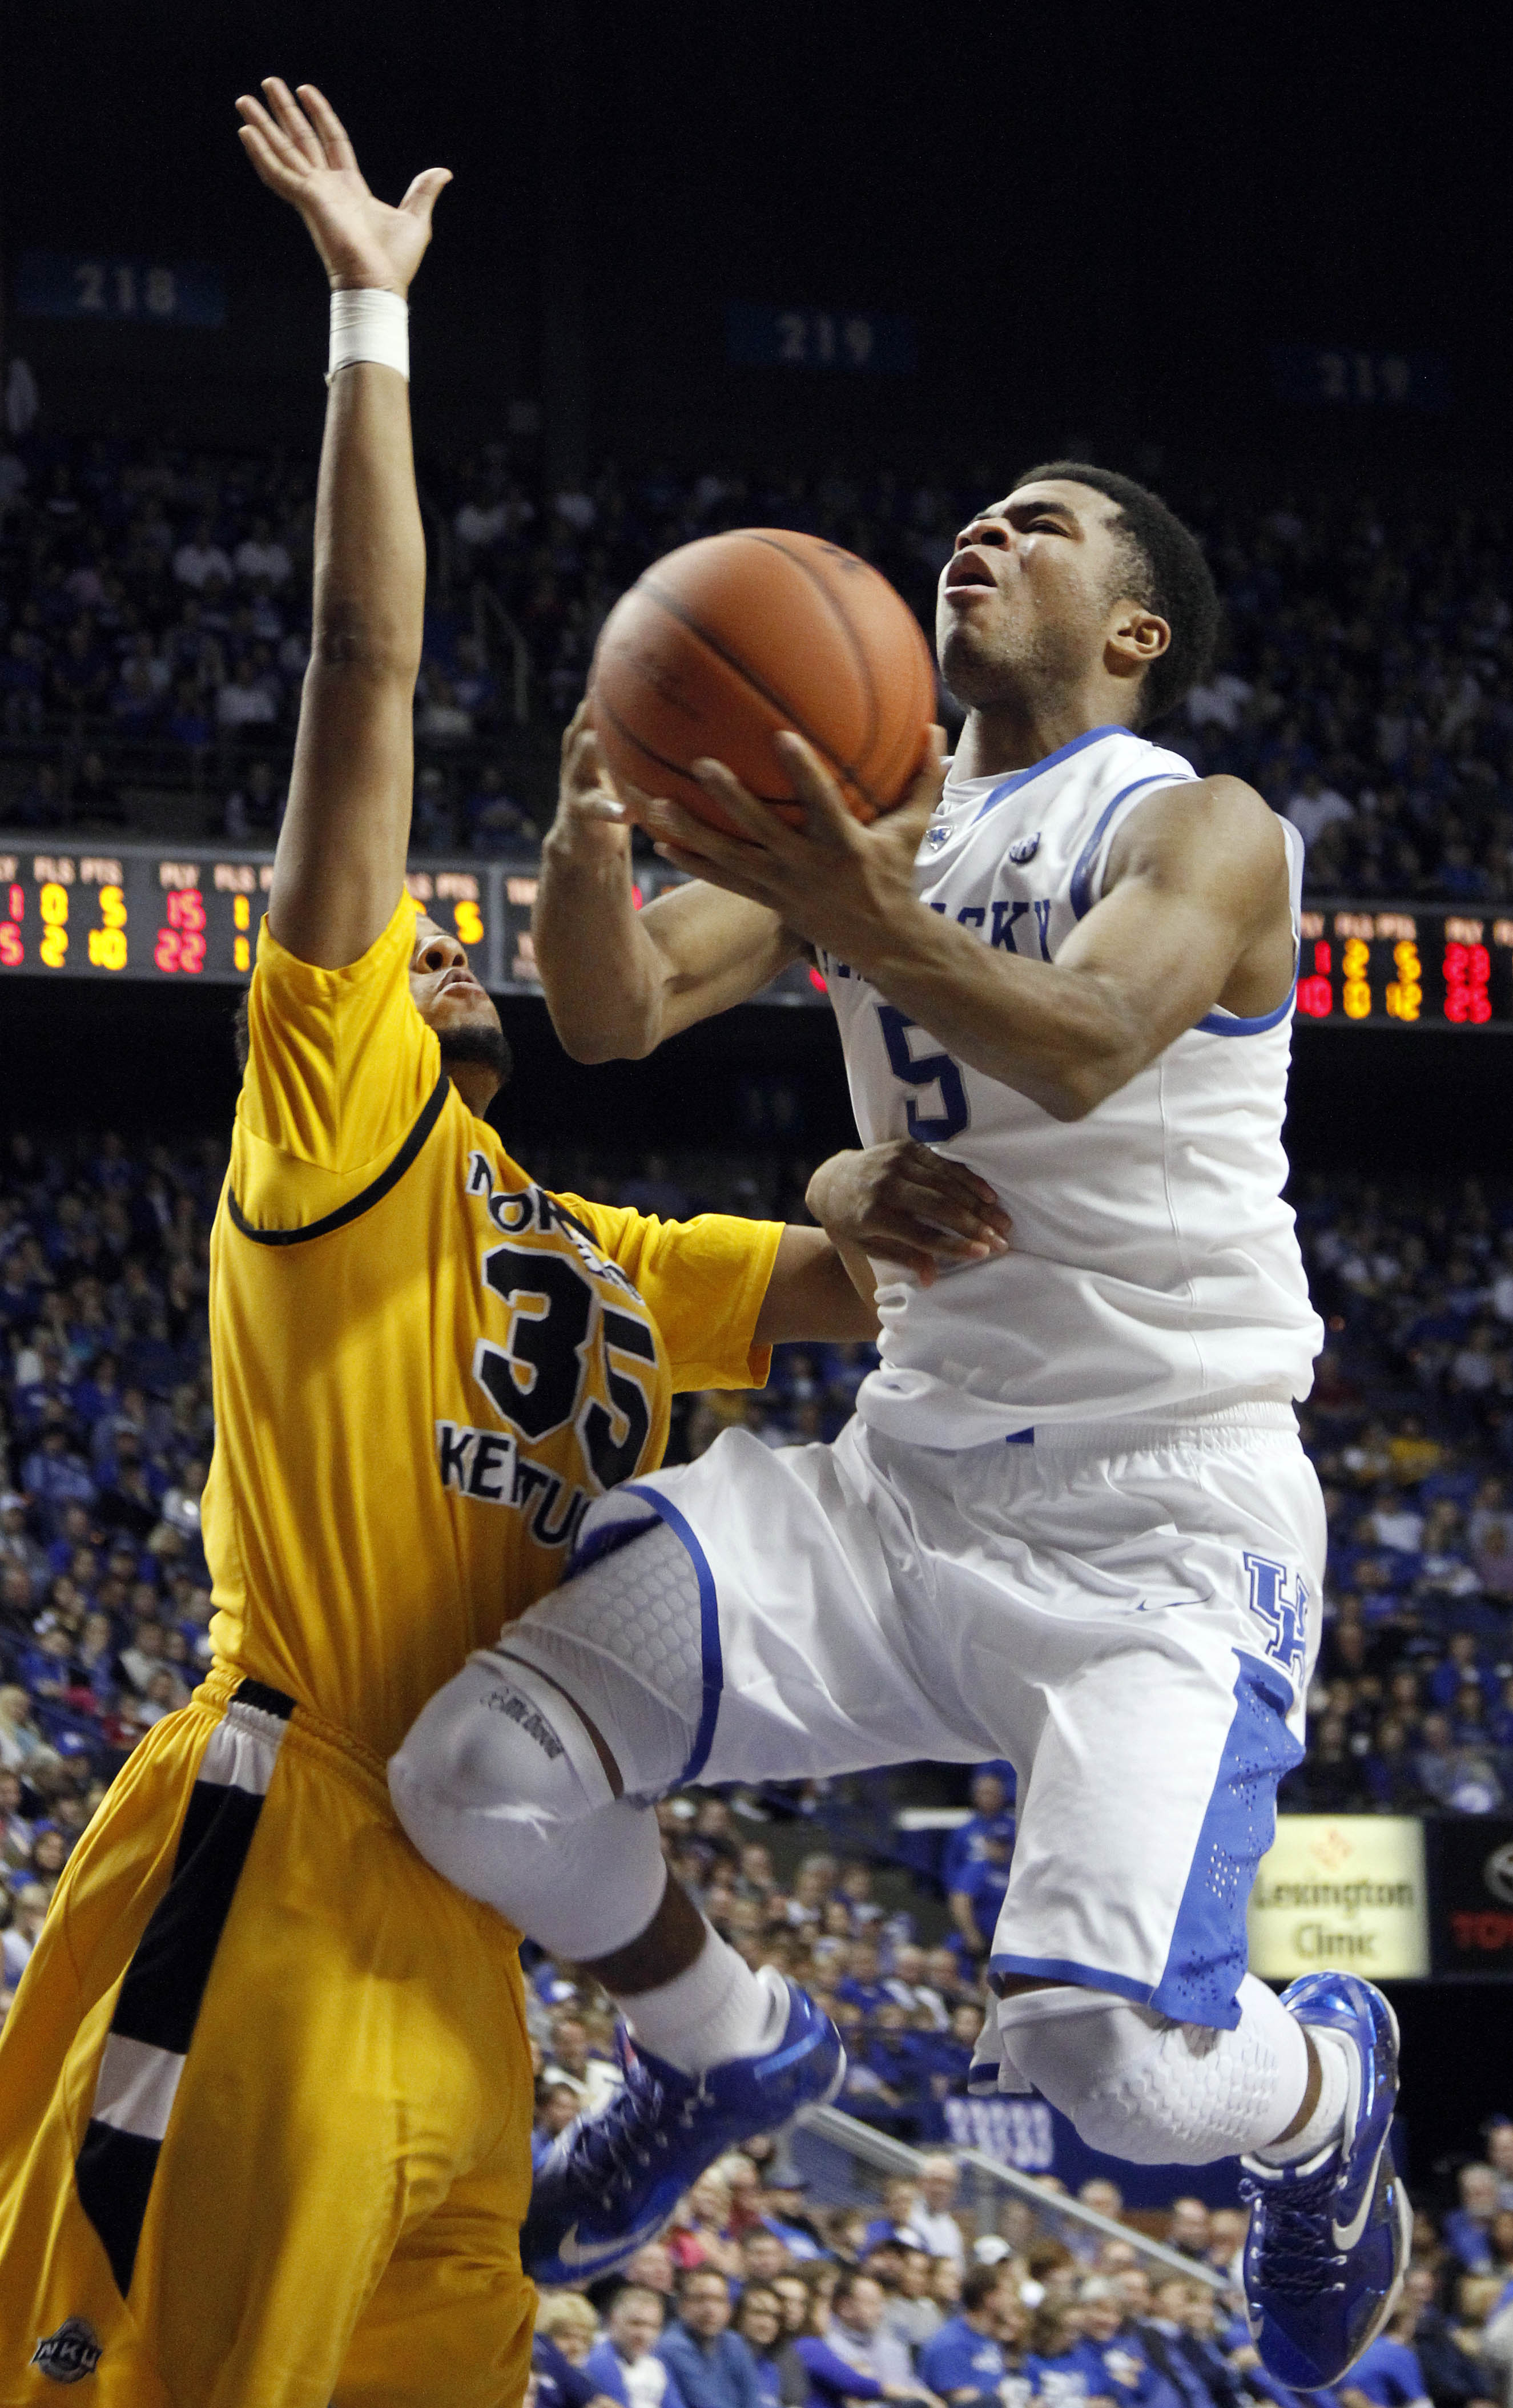 Kentucky's Andrew Harrison (5) shoots under pressure from Northern Kentucky's Deontae Cole (35) during the second half of an NCAA college basketball game, Sunday, Nov. 10, 2013, in Lexington, Ky